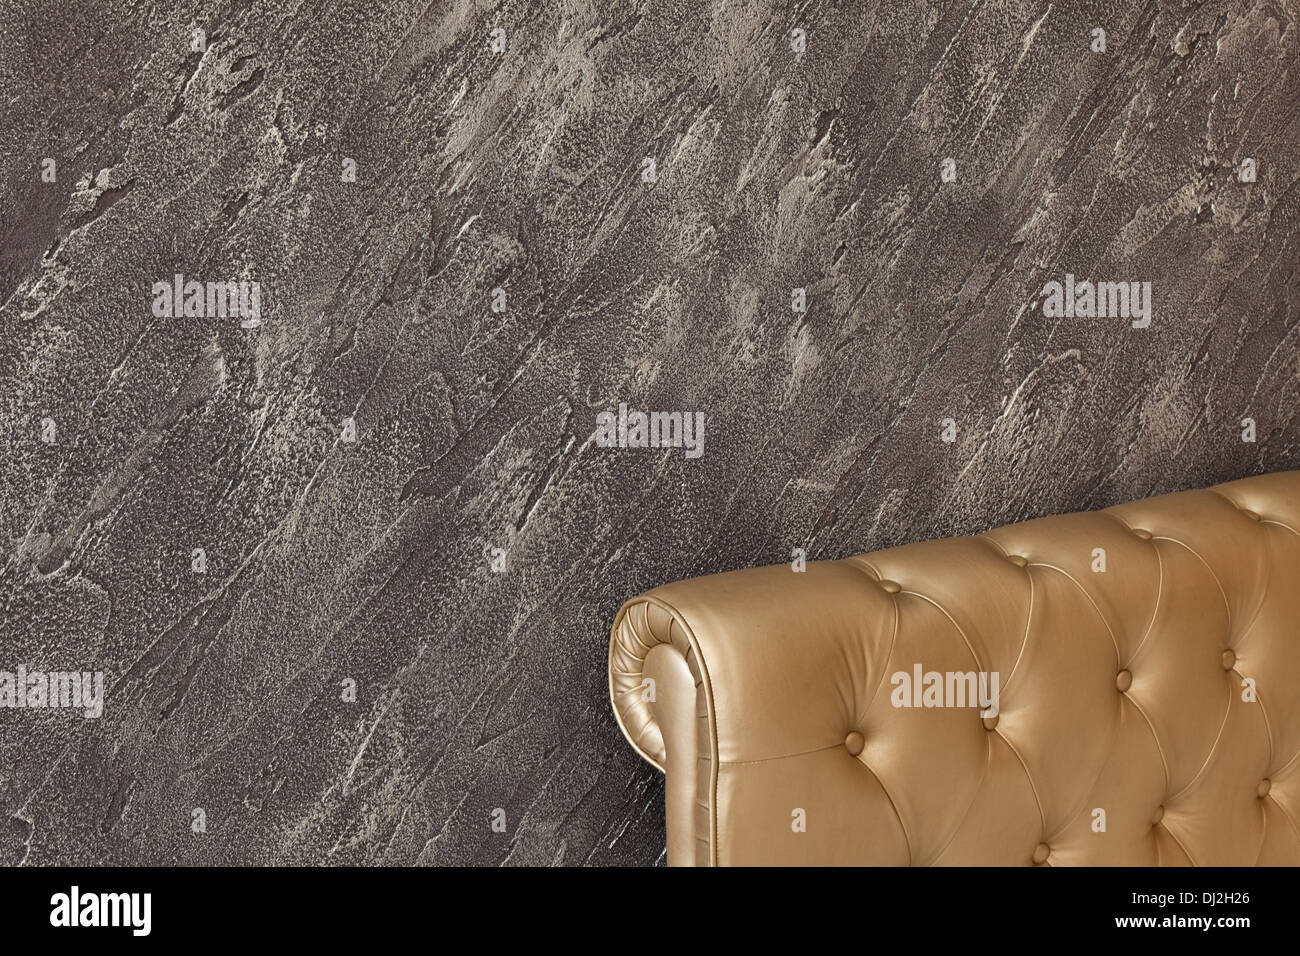 detail of interior wall decorative plaster Stock Photo